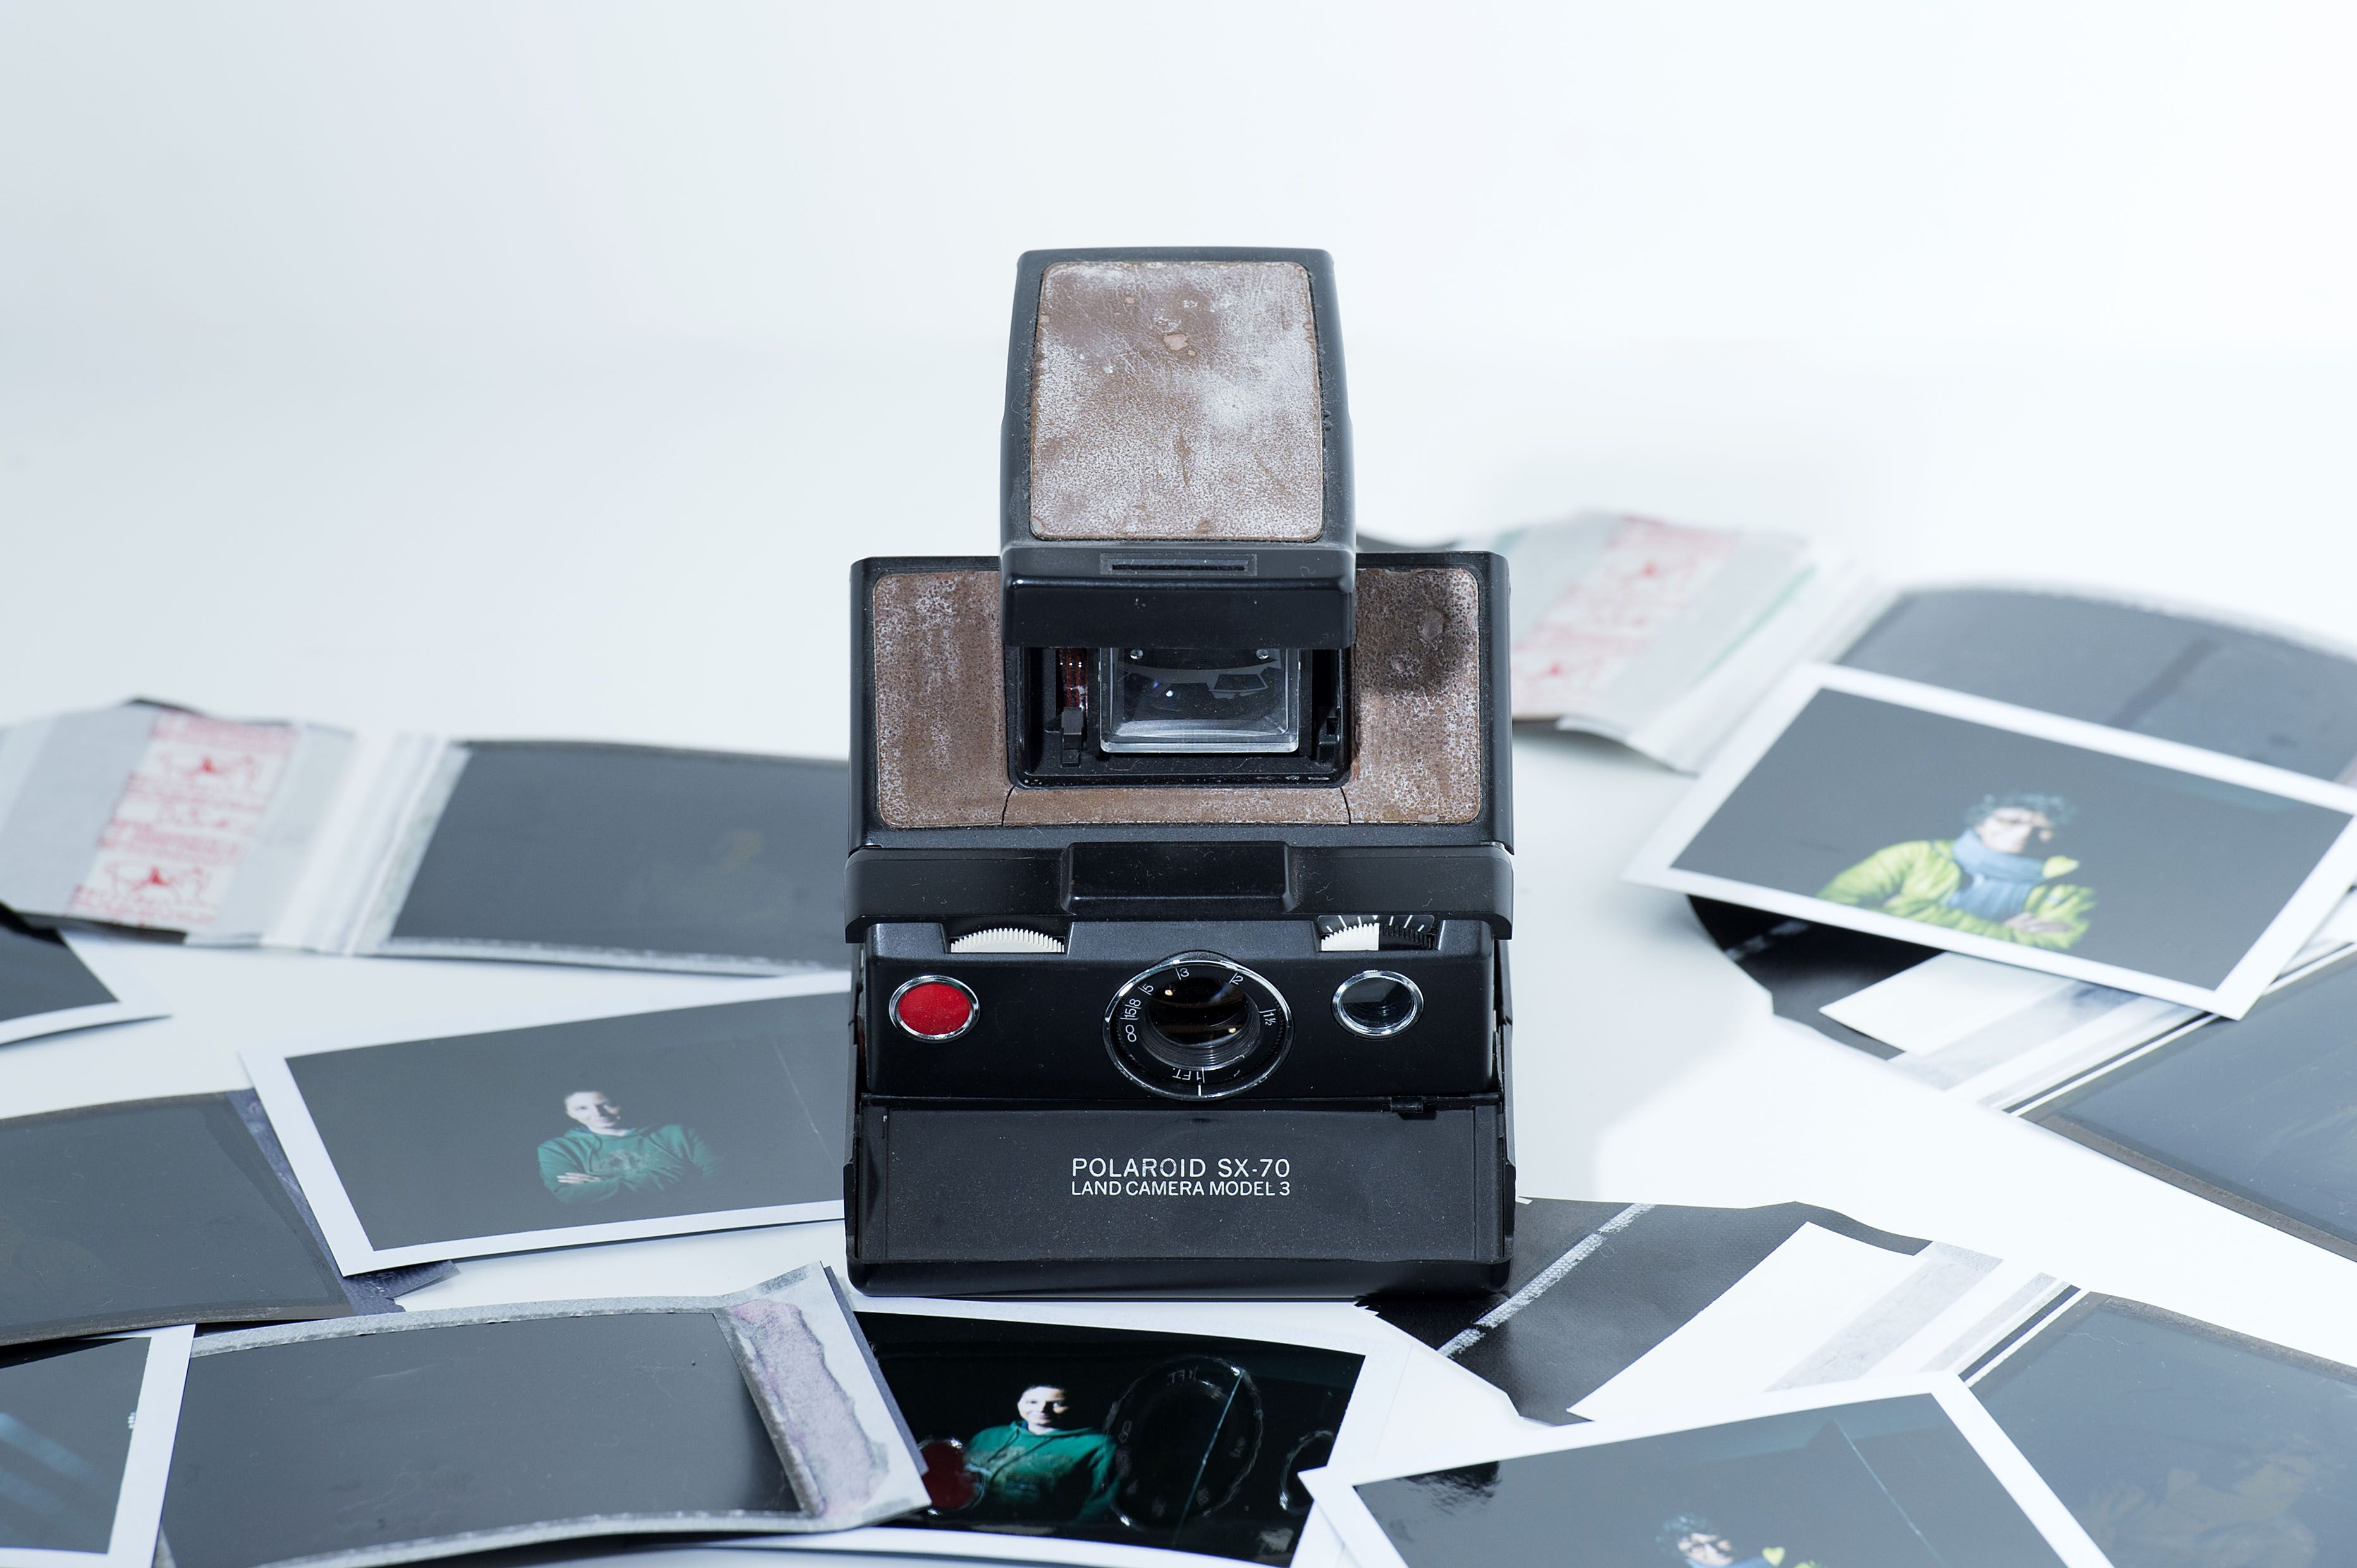 Legacybox Is a Mail-In Service That Will Digitize Your Old Photos and Tapes So You Can Keep Them Forever